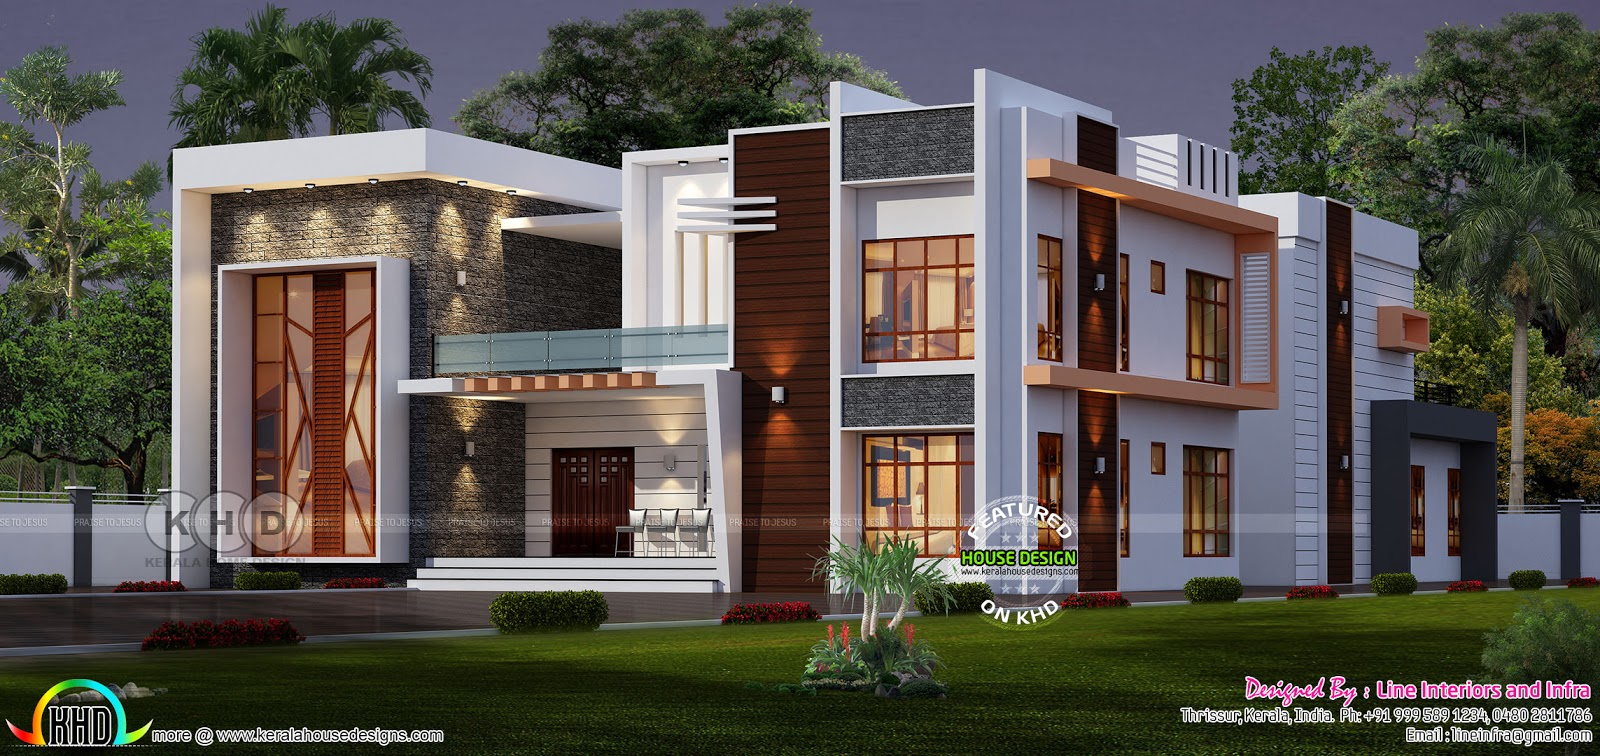 Elevated Home Plans Elevated Contemporary Home Plan Kerala Home Design And28    Elevated Home Plans     Waterfront House Plans Elevated  . Elevated Home Designs. Home Design Ideas